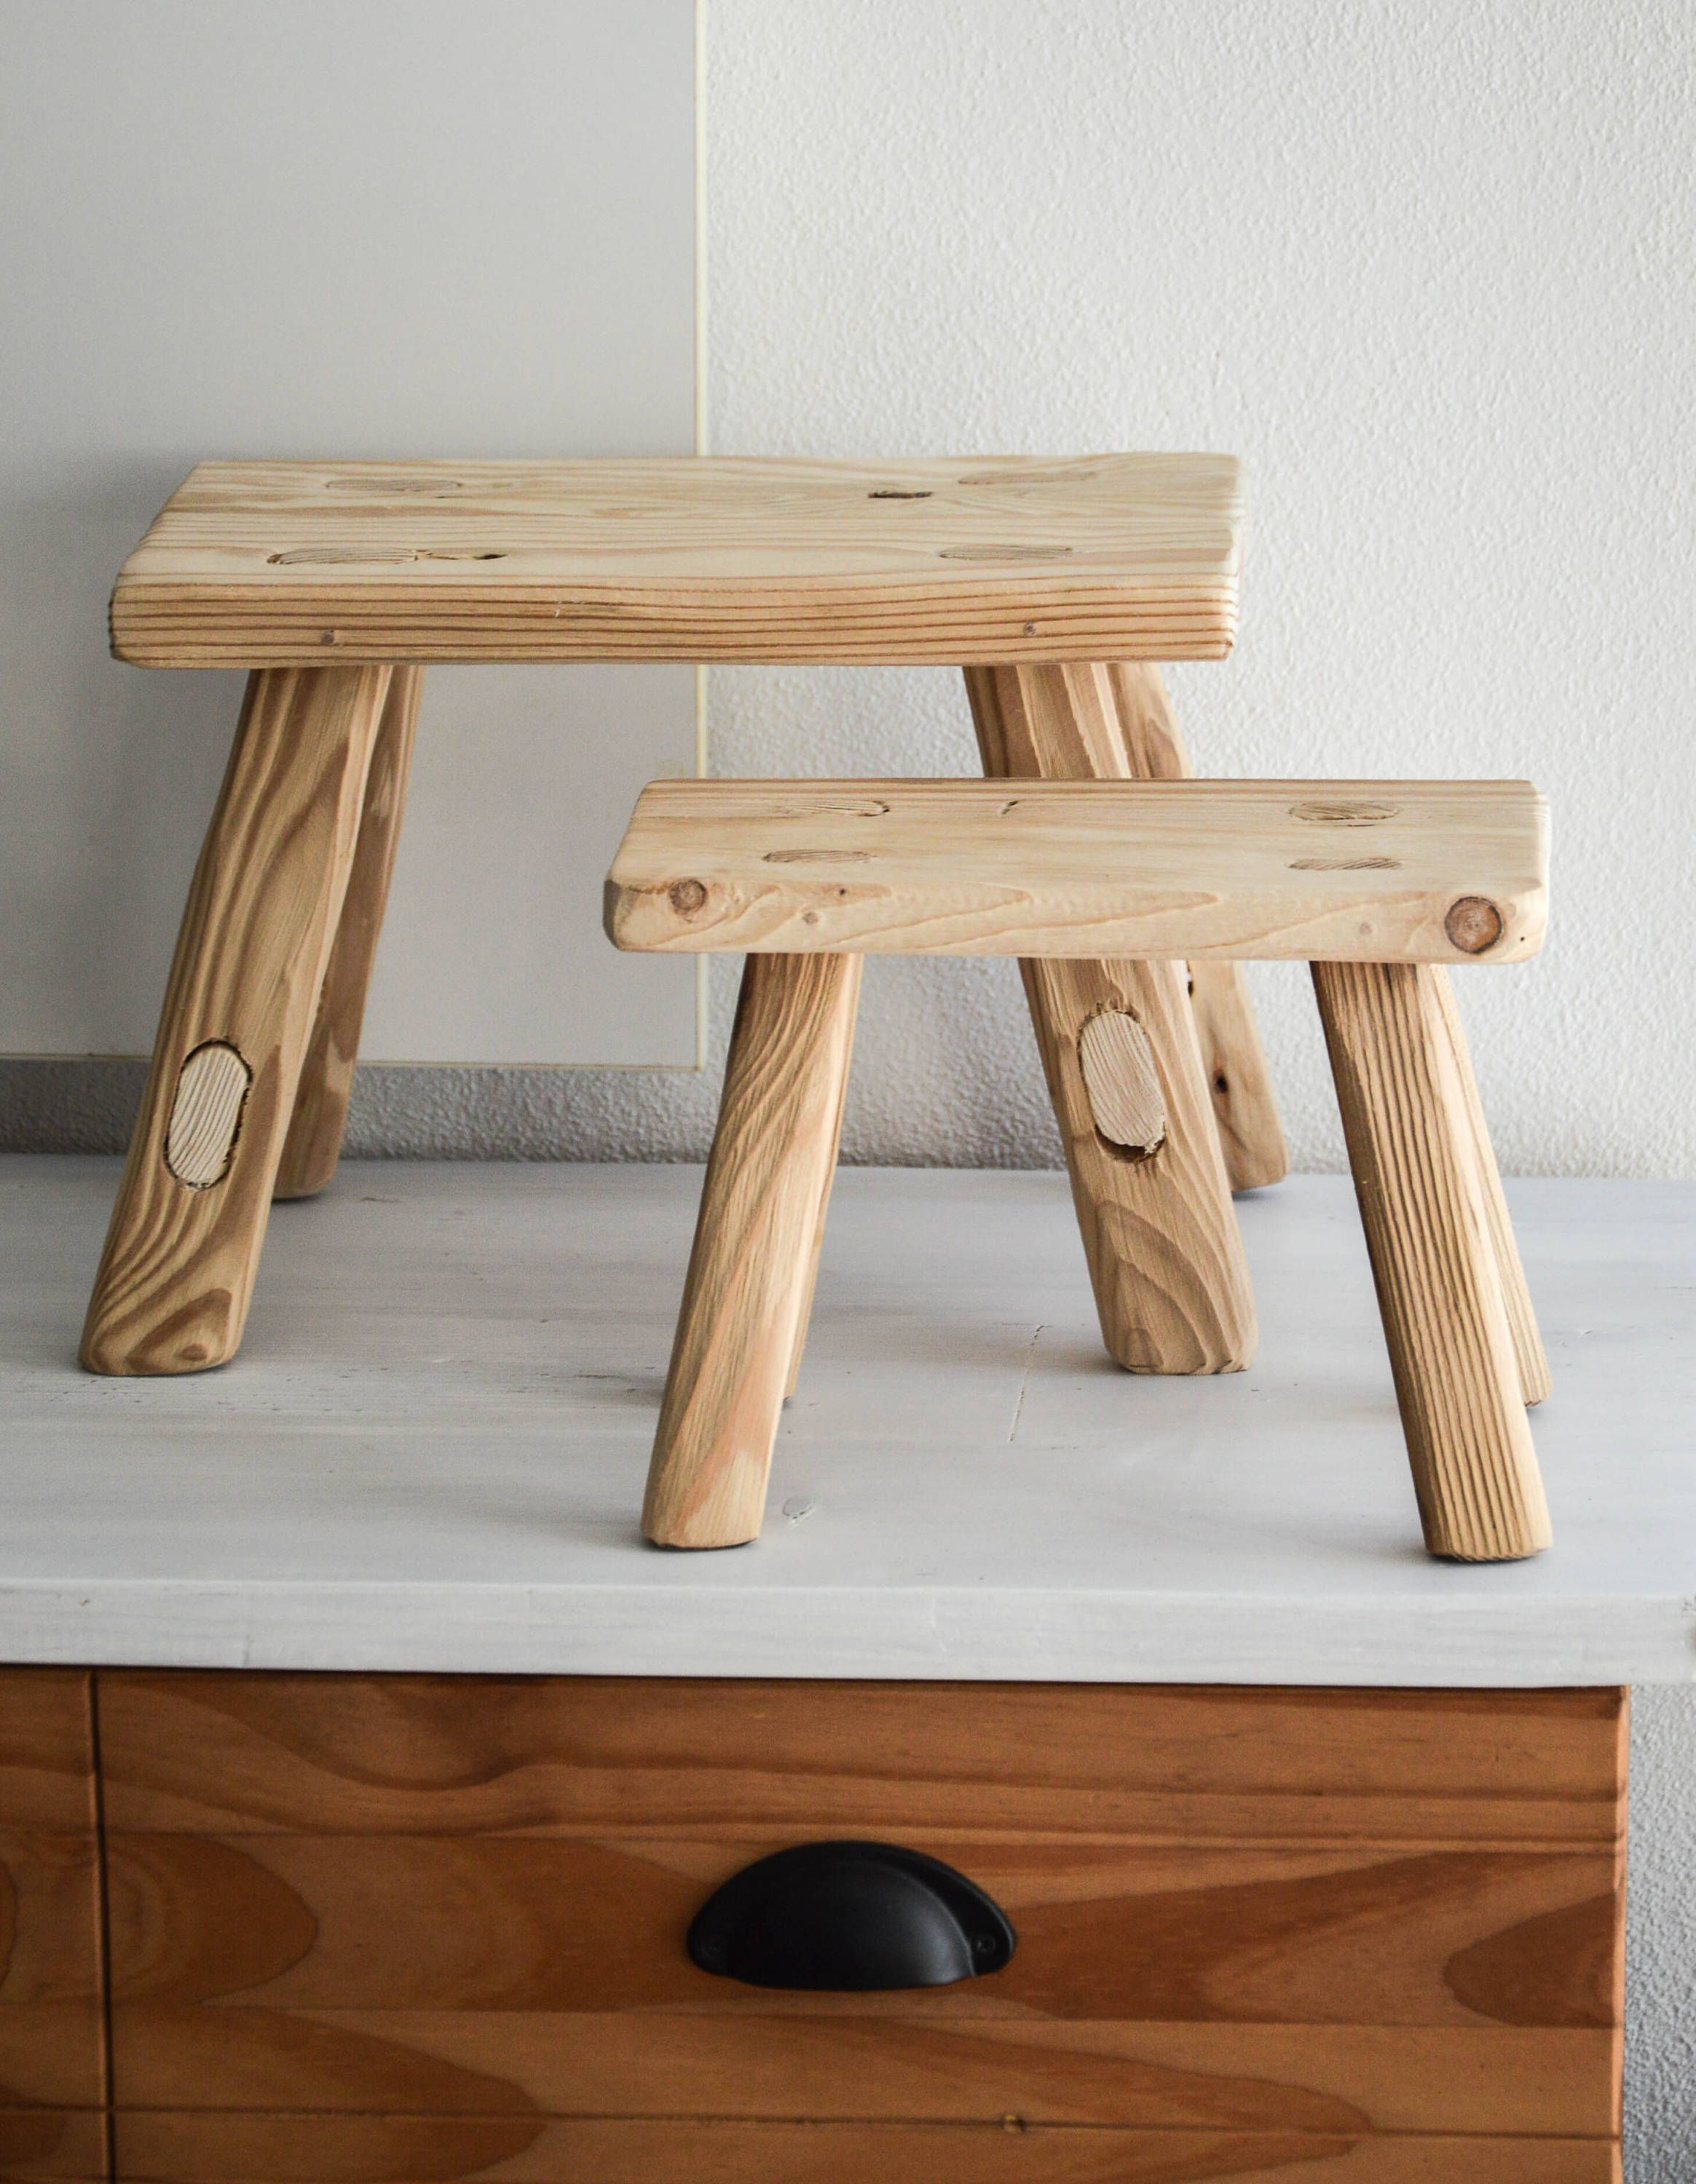 Handmade Wooden Stool Milking Spruce Barn Wood Bathroom Furniture